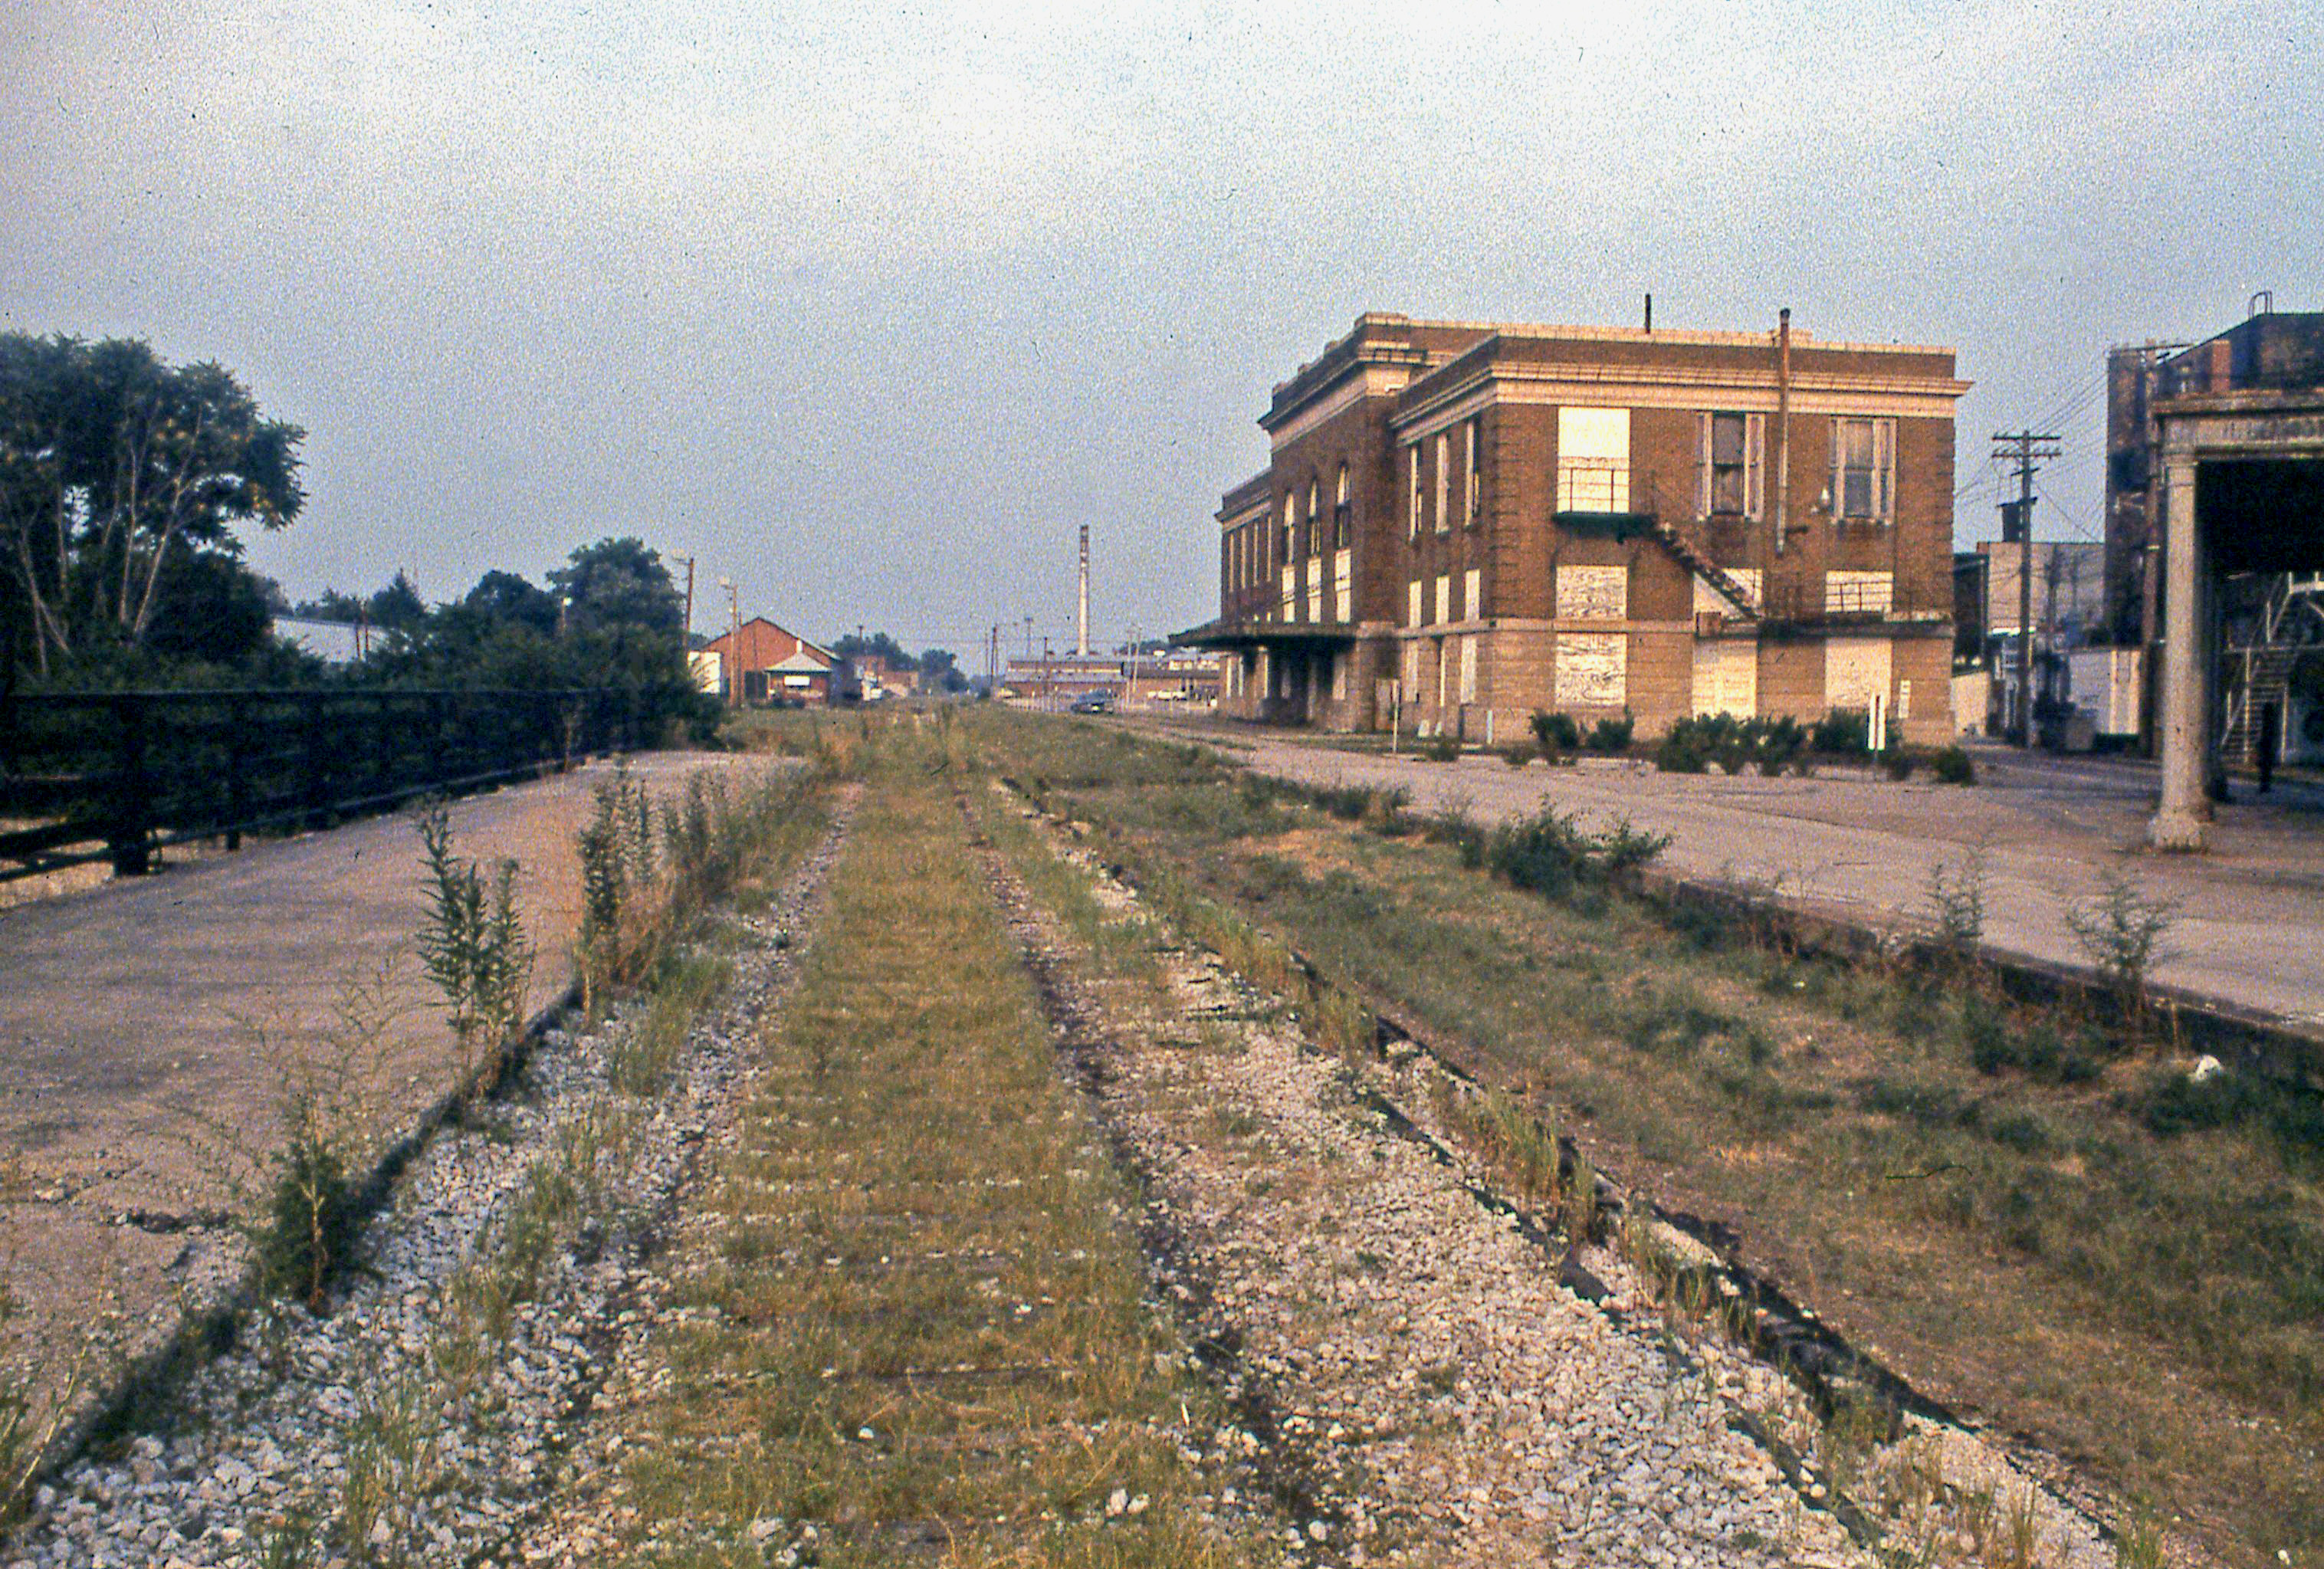 Mattoon (IL) United States  city photos gallery : trainstations conrail newyorkcentral abandonedrailroads ...